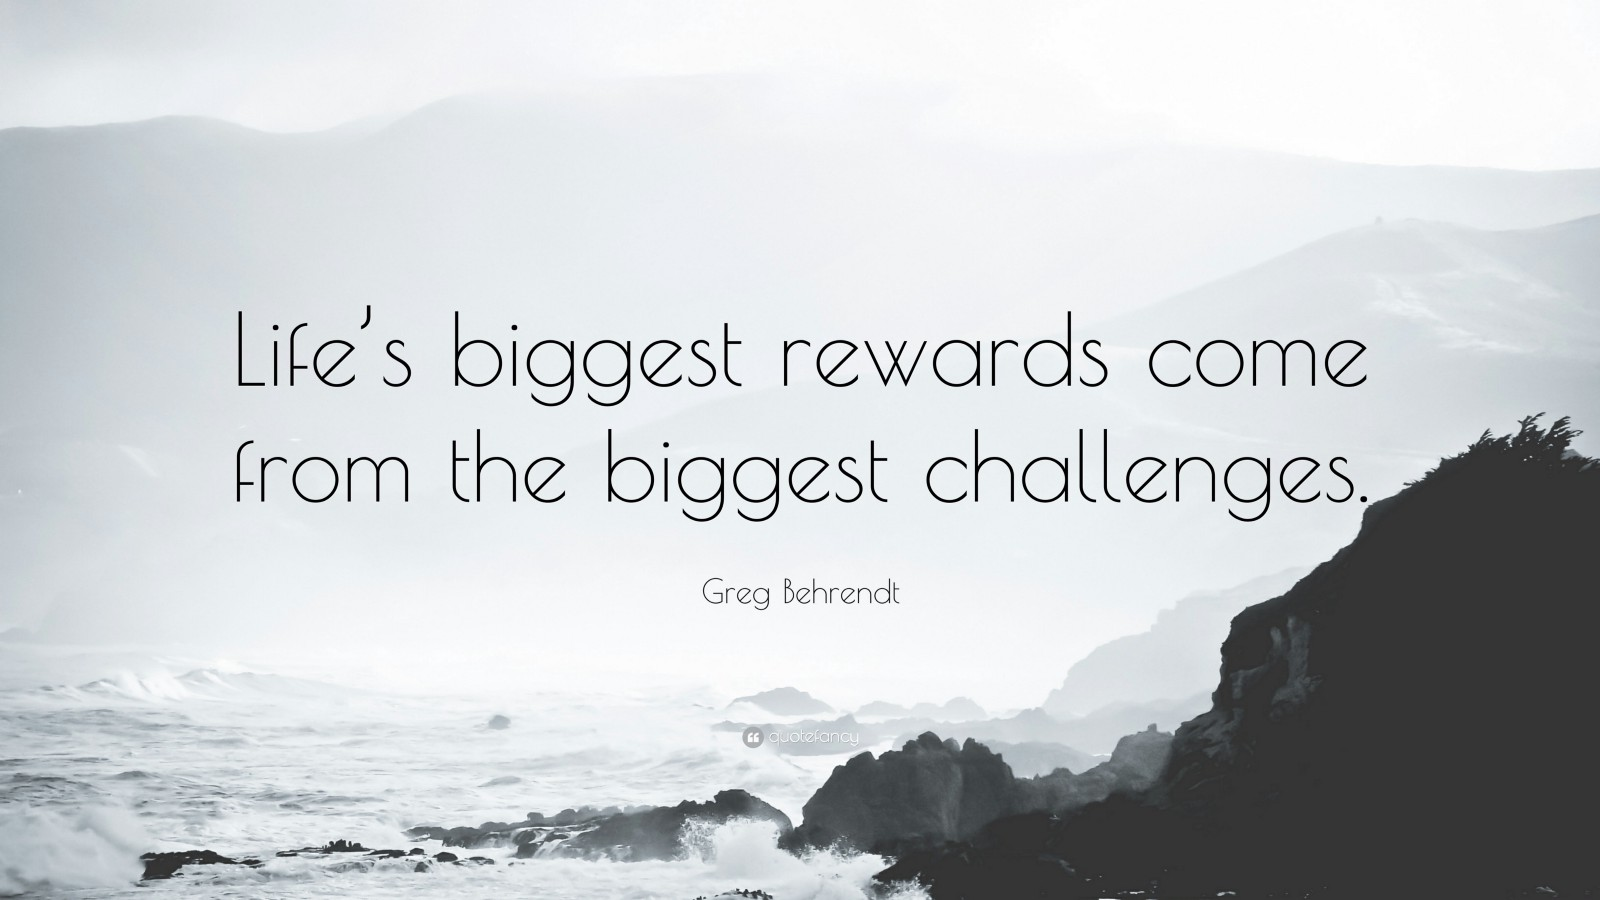 The biggest rewards comes with the highest competition